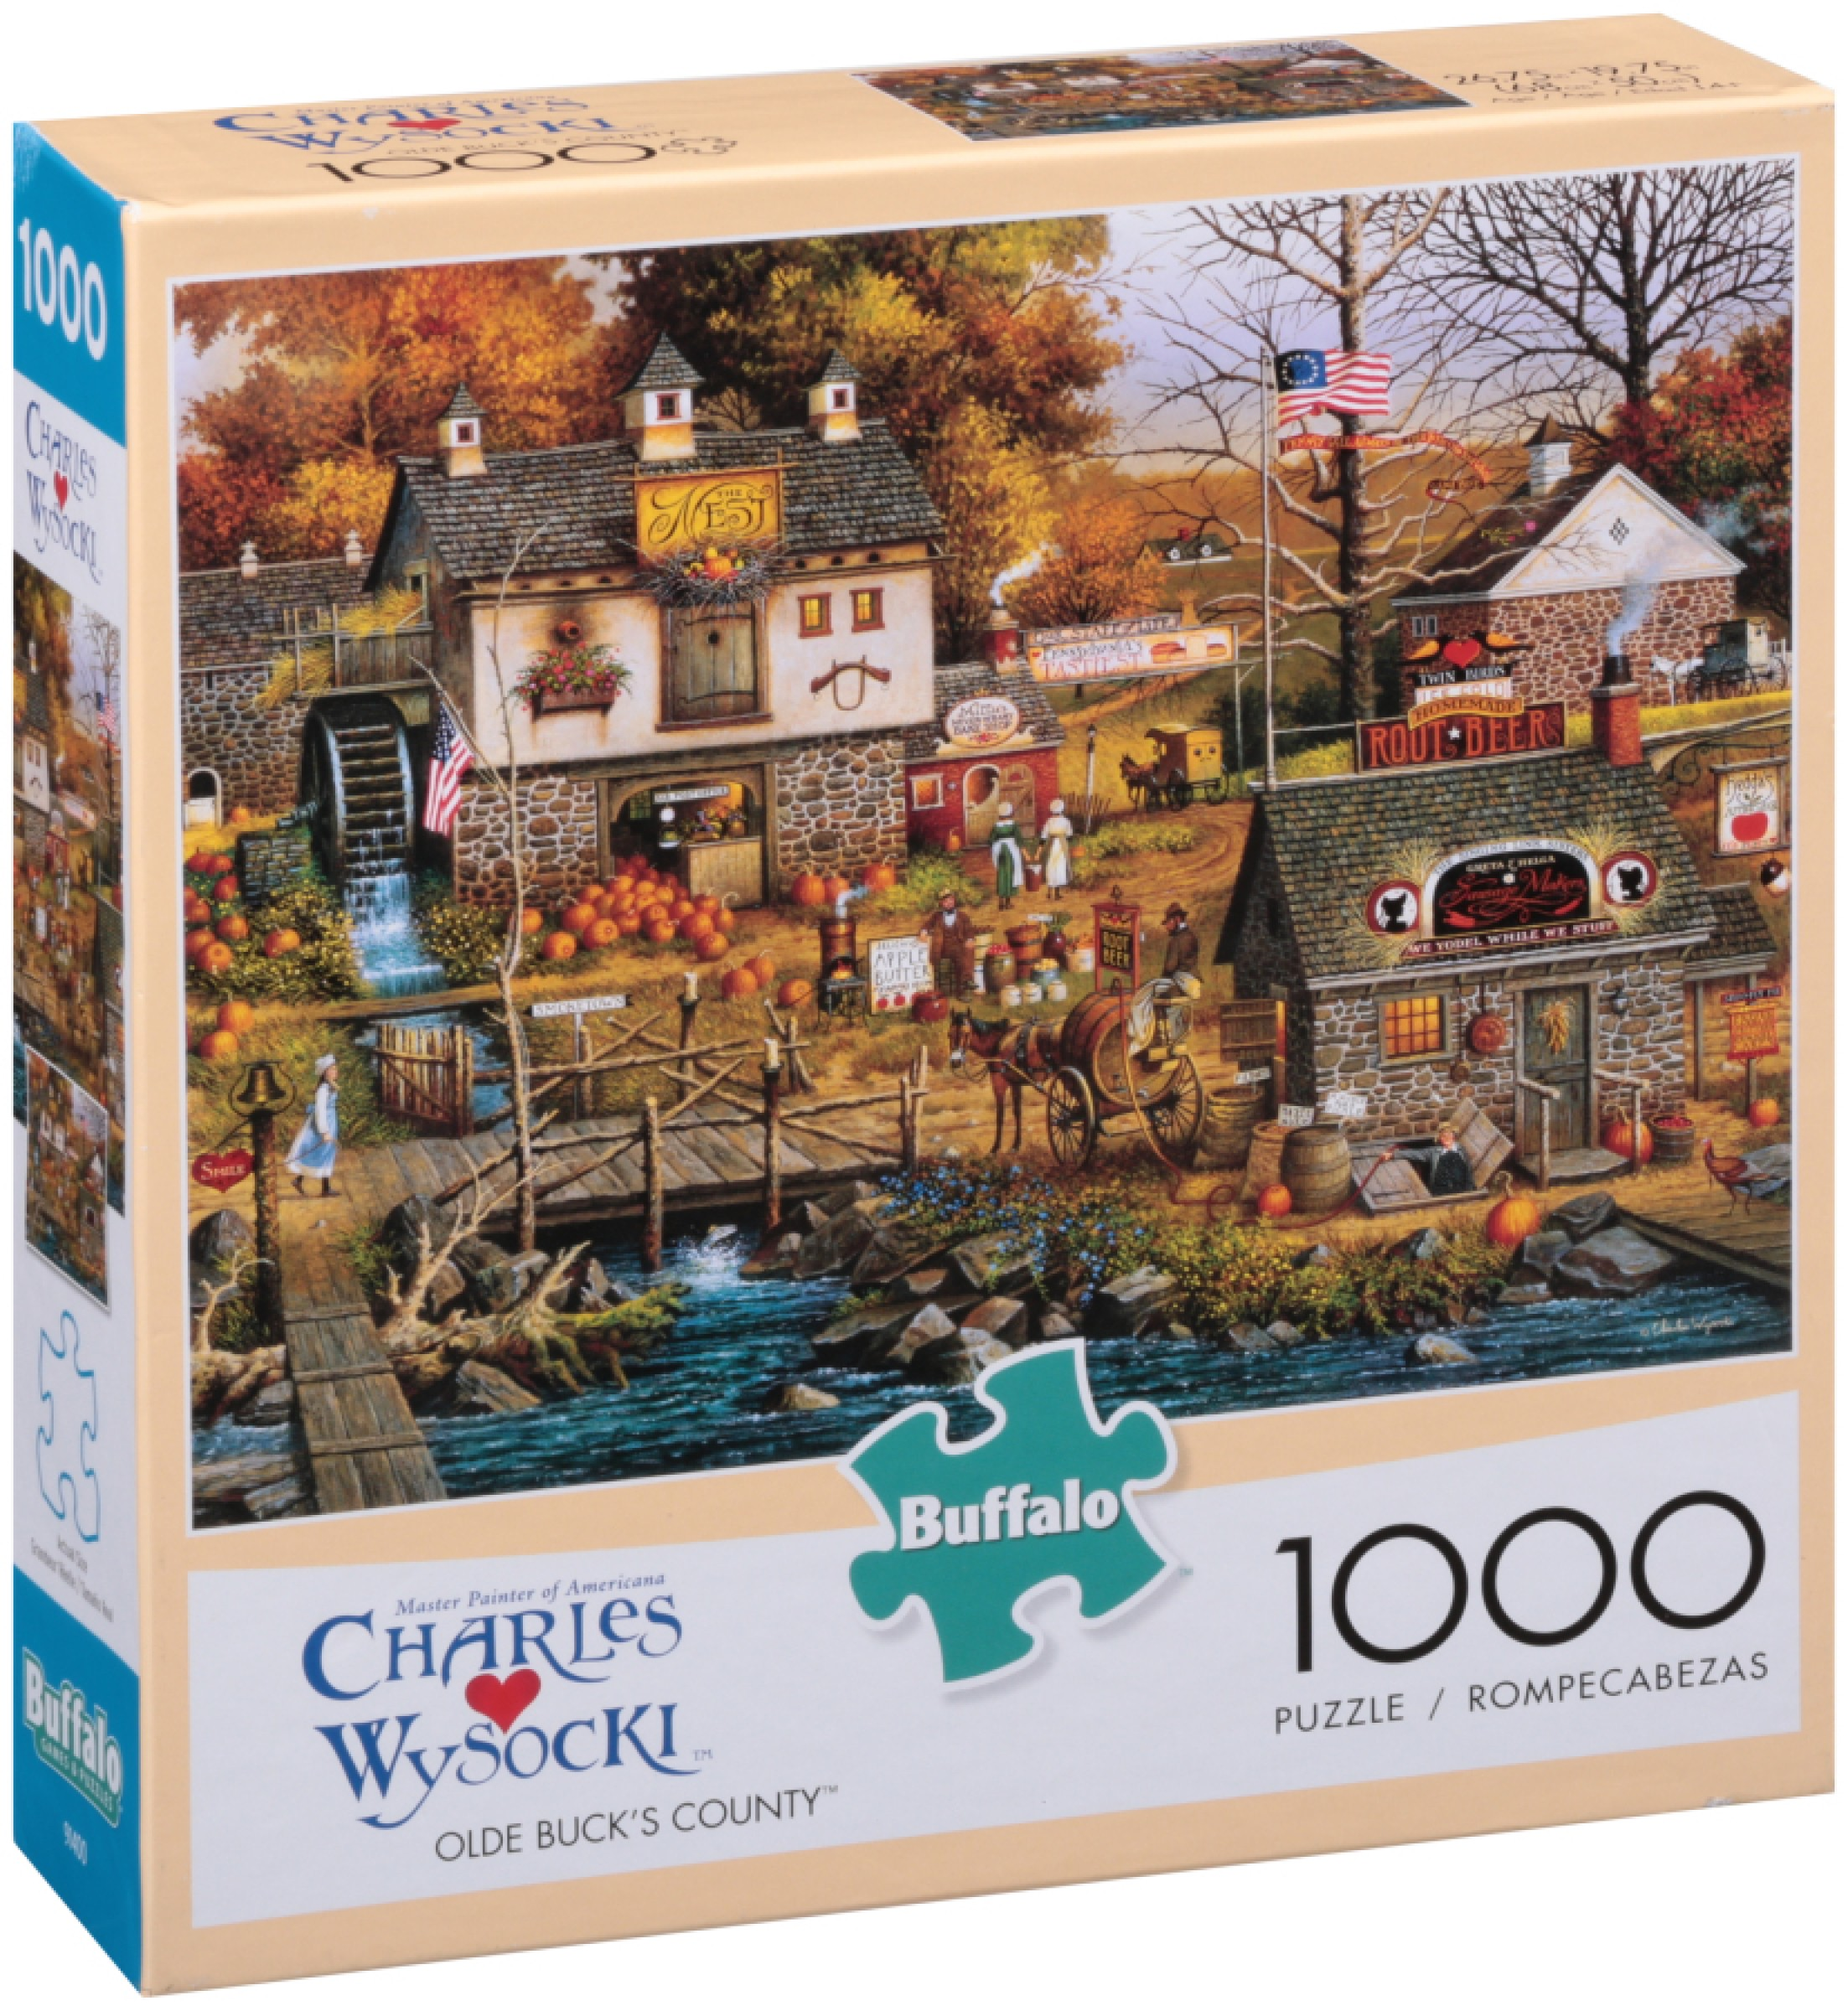 Buffalo Charles Wysocki Olde Buck's County 1000 Puzzle by Buffalo Games, LLC